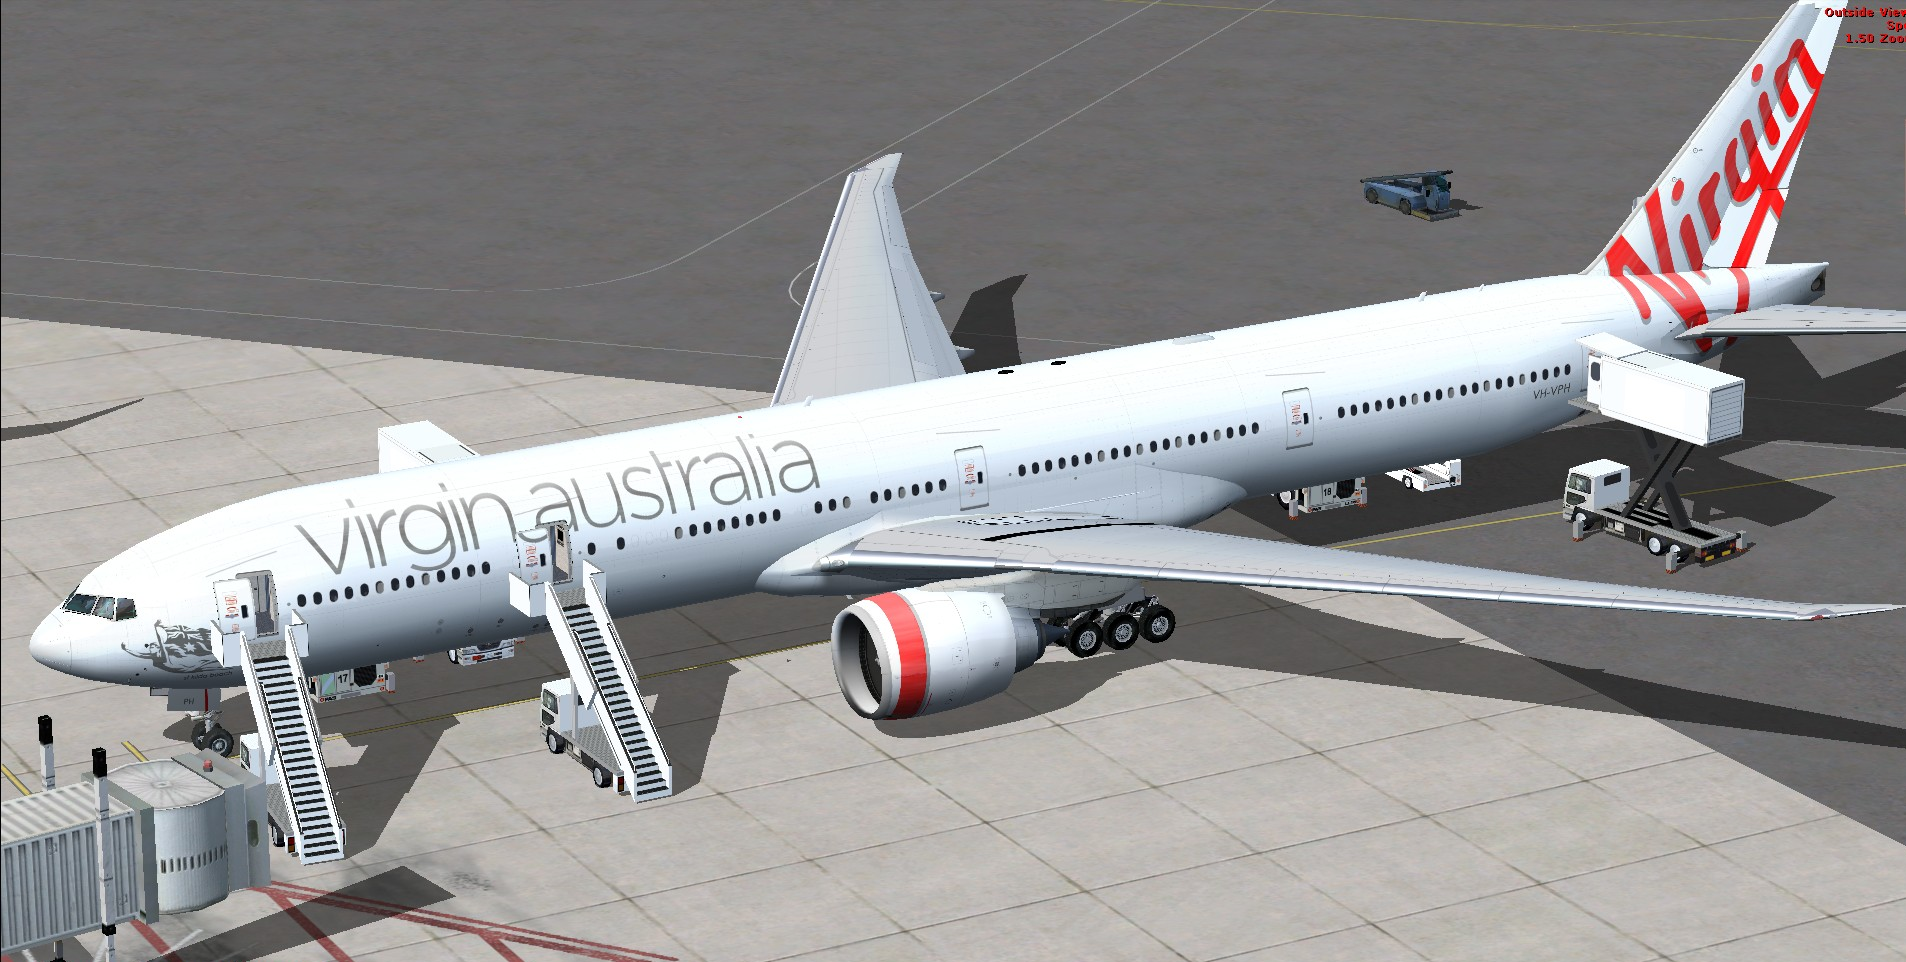 Fs freeware fsx virgin australia boeing 777 31her with vc virgin australia boeing 777 31her registration vh vph with virtual cockpit and fmc for fsx virgin australia boeing 777 300er includes revised vc and fmc publicscrutiny Image collections